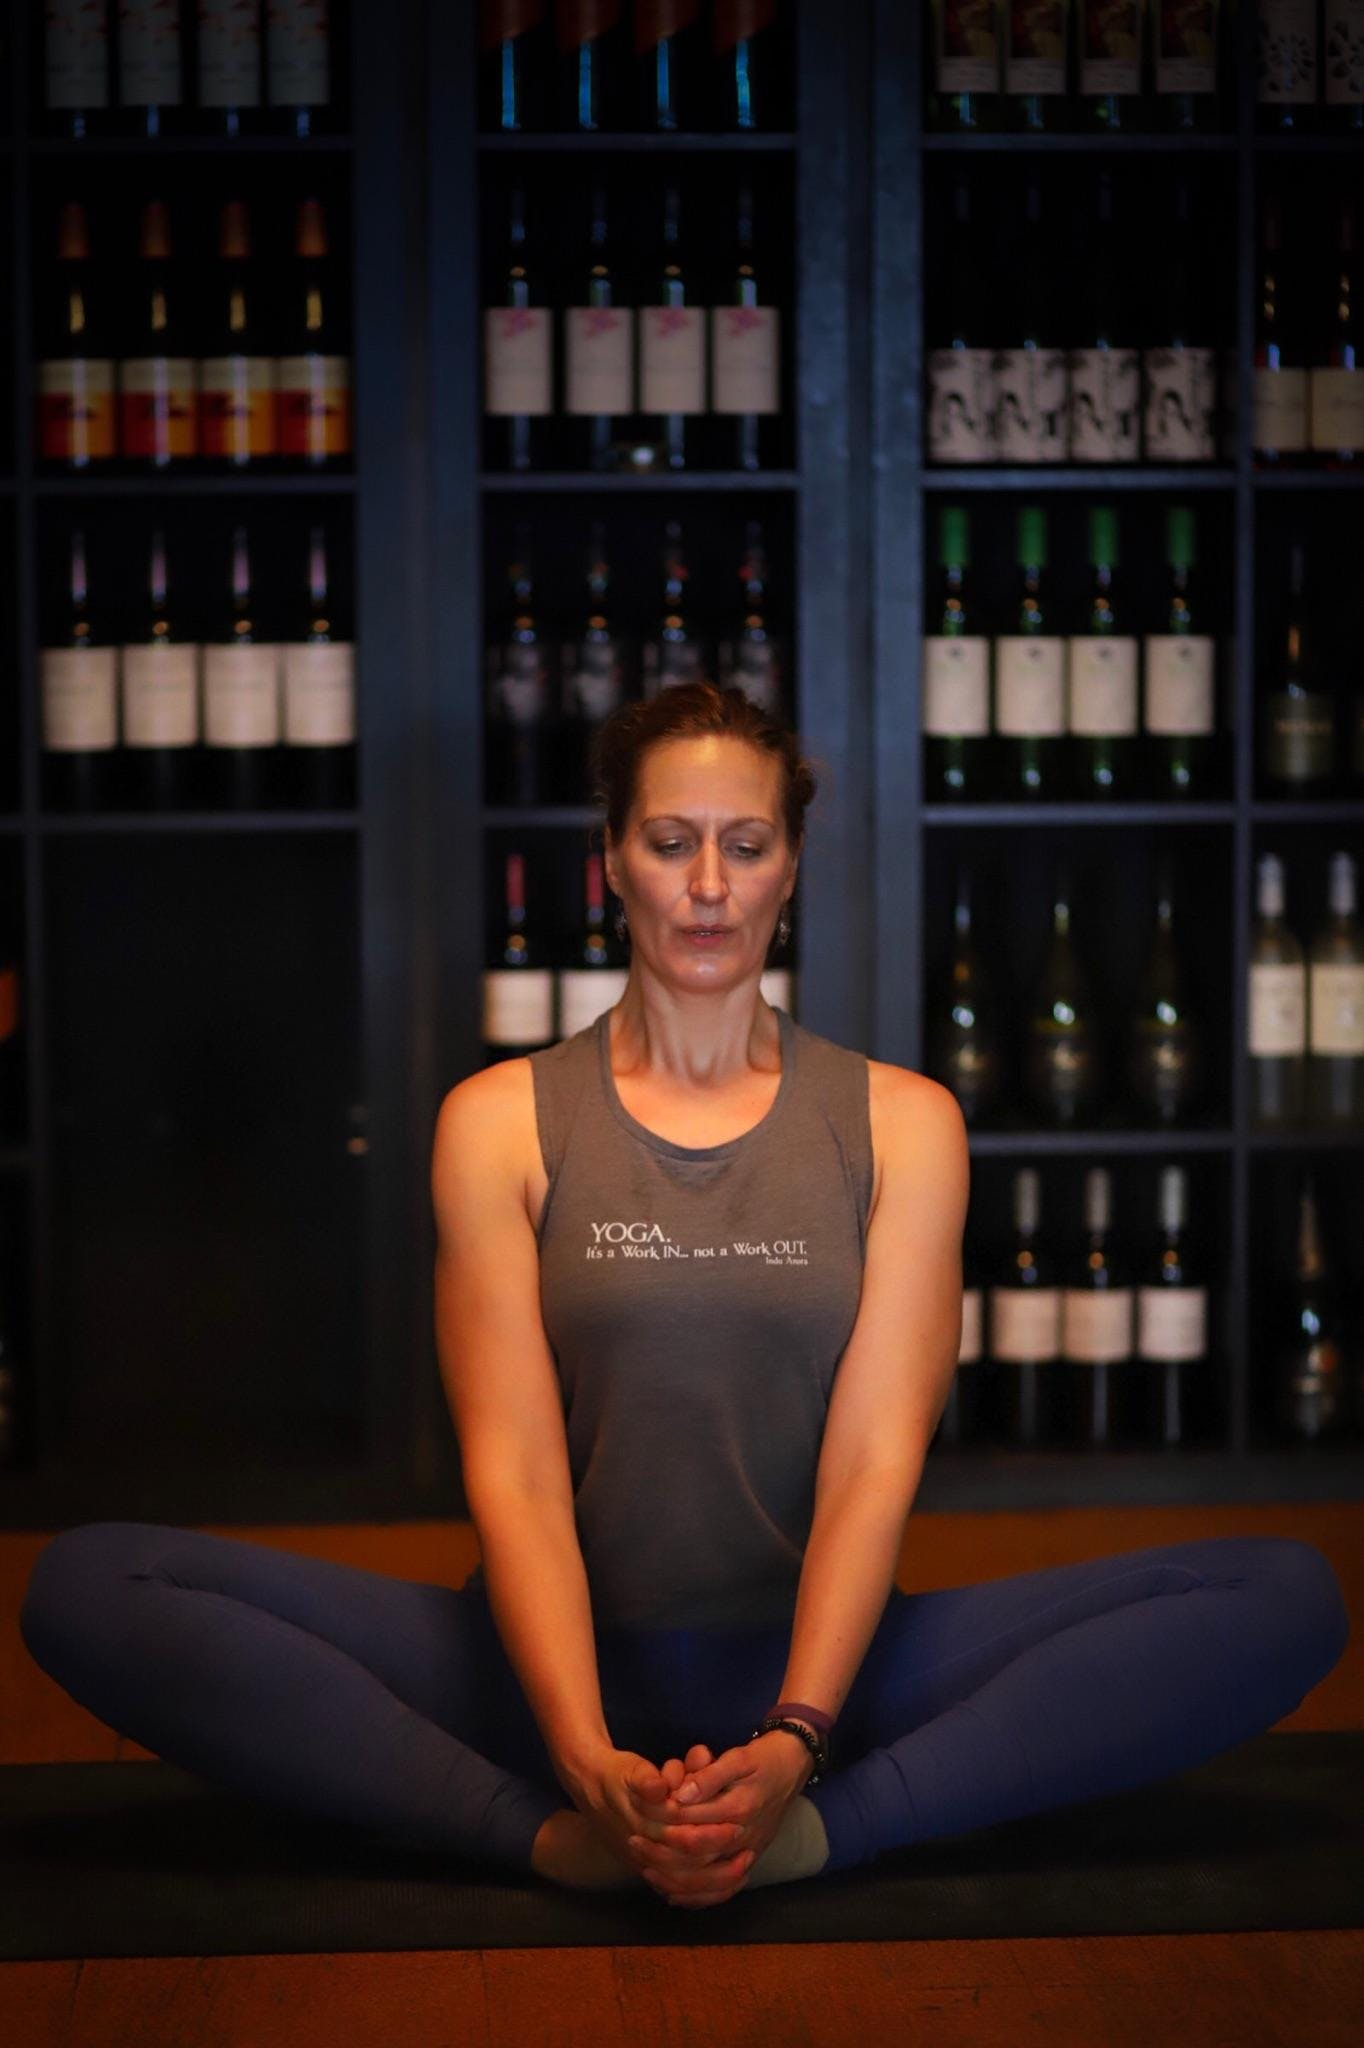 Yoga and Wine*